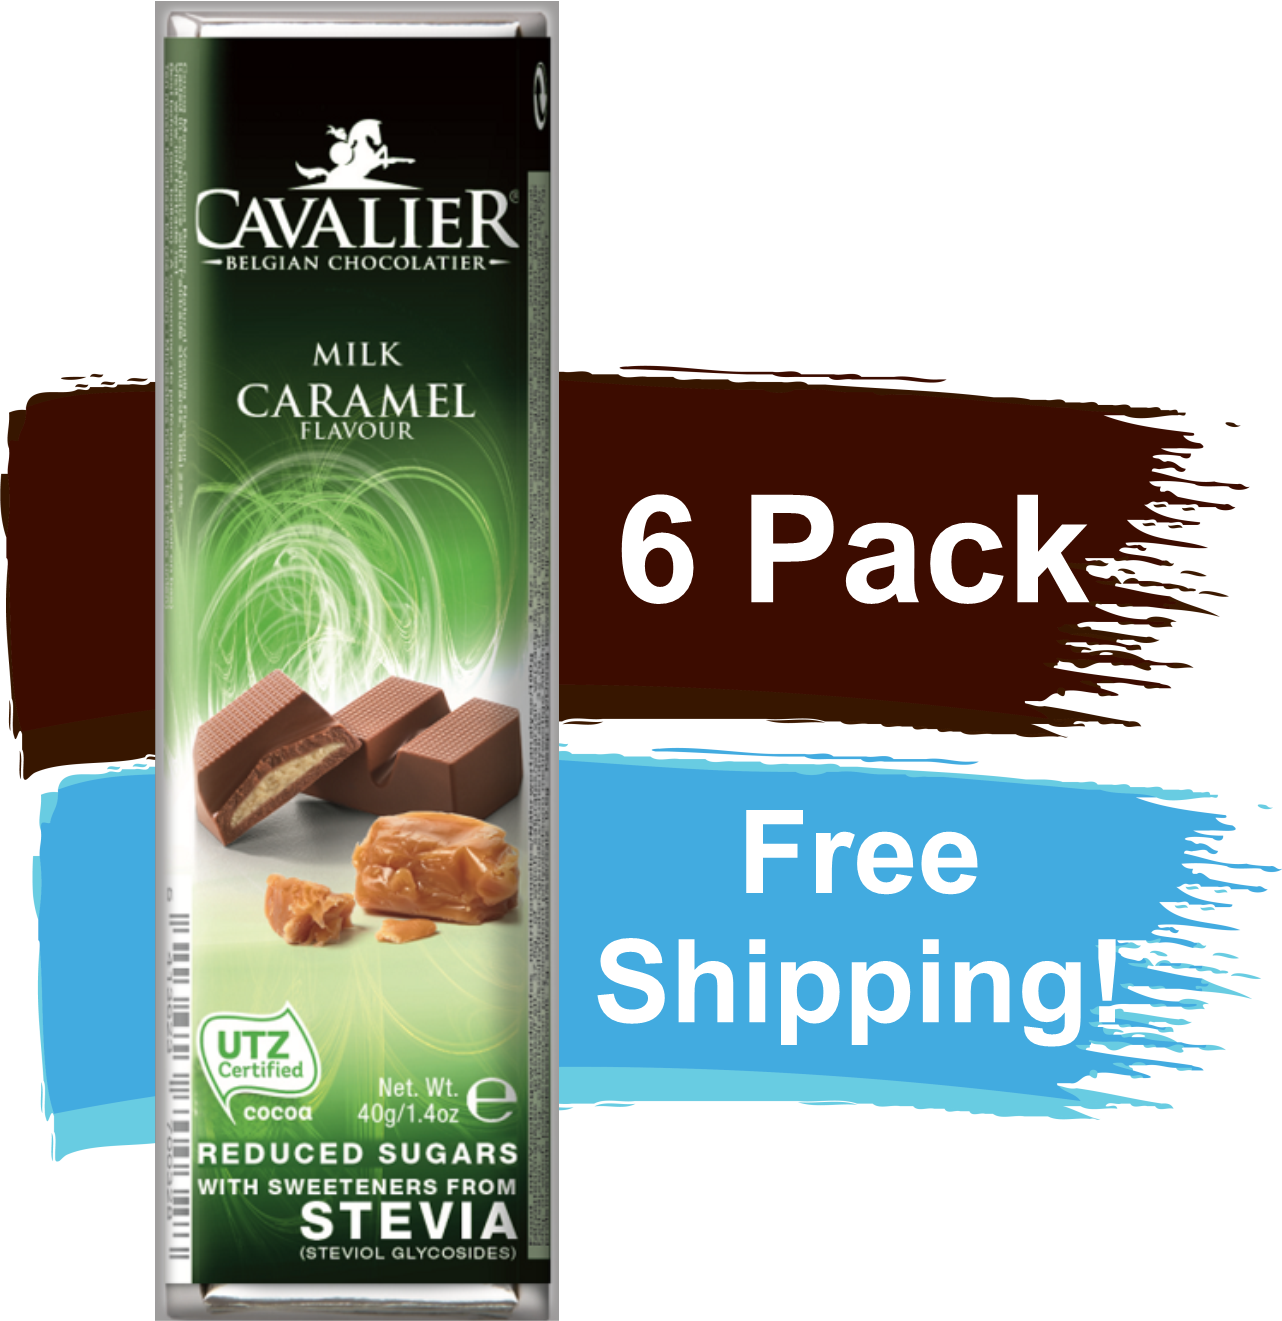 Cavalier Chocolate Reduced Sugar with Stevia Milk Chocolate Caramel 6 Pack